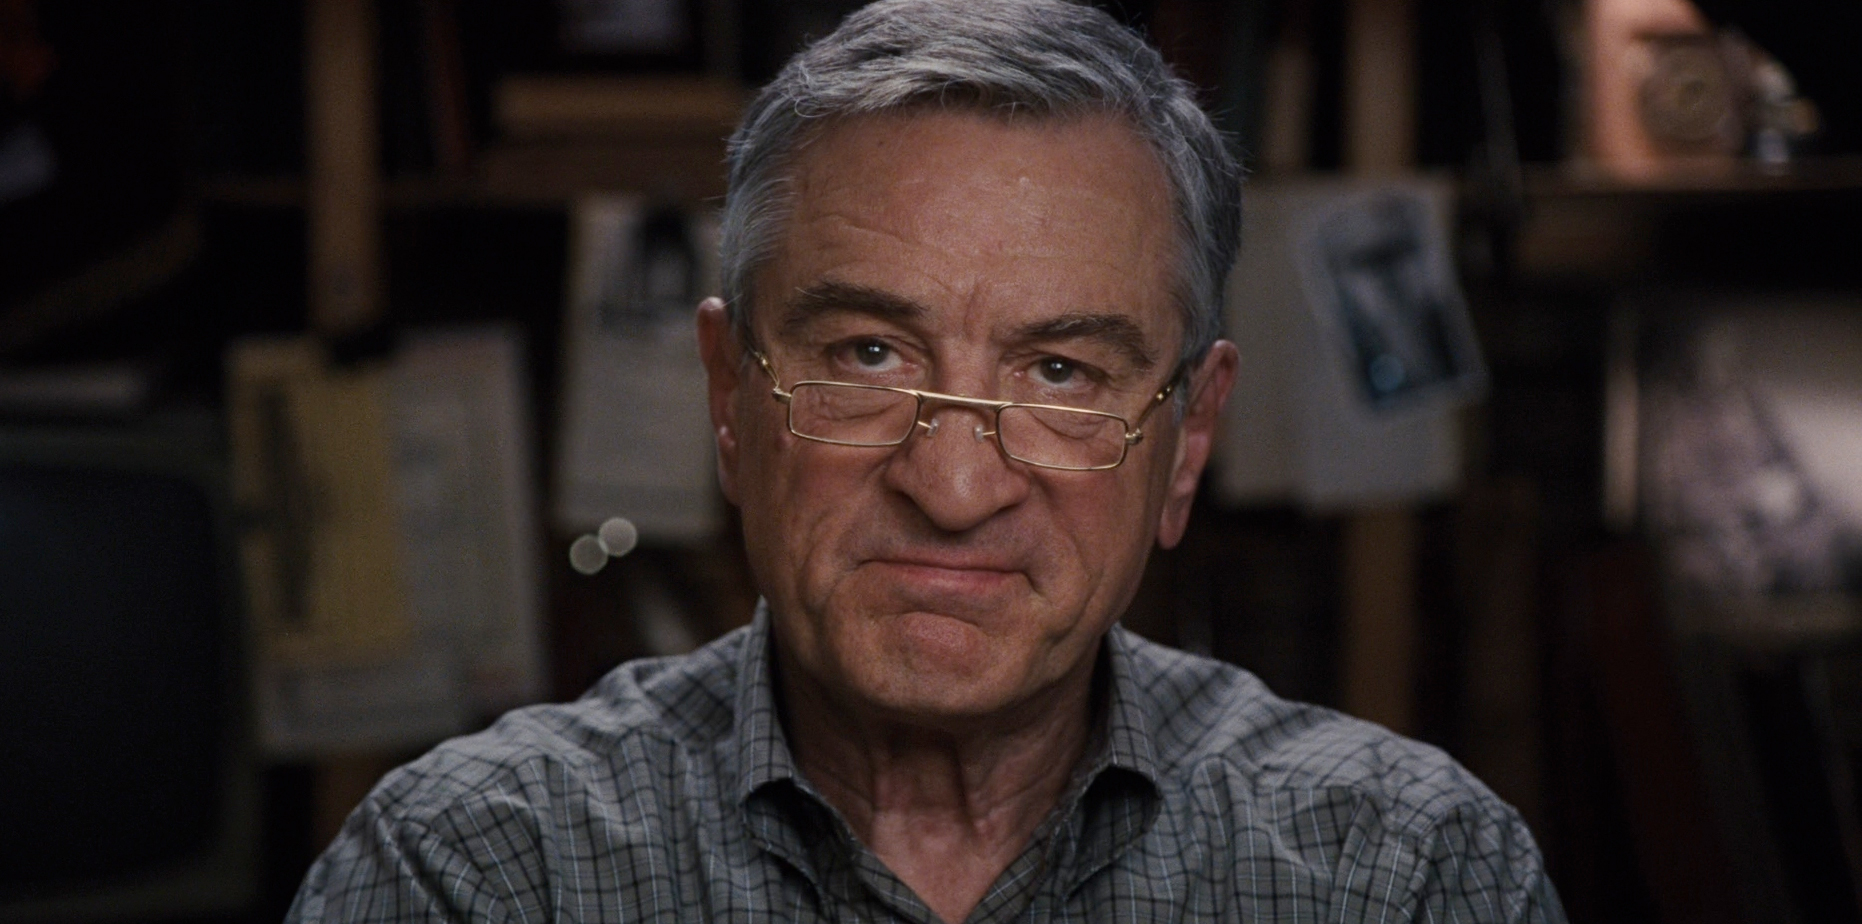 robert de niro face meet the parents actor